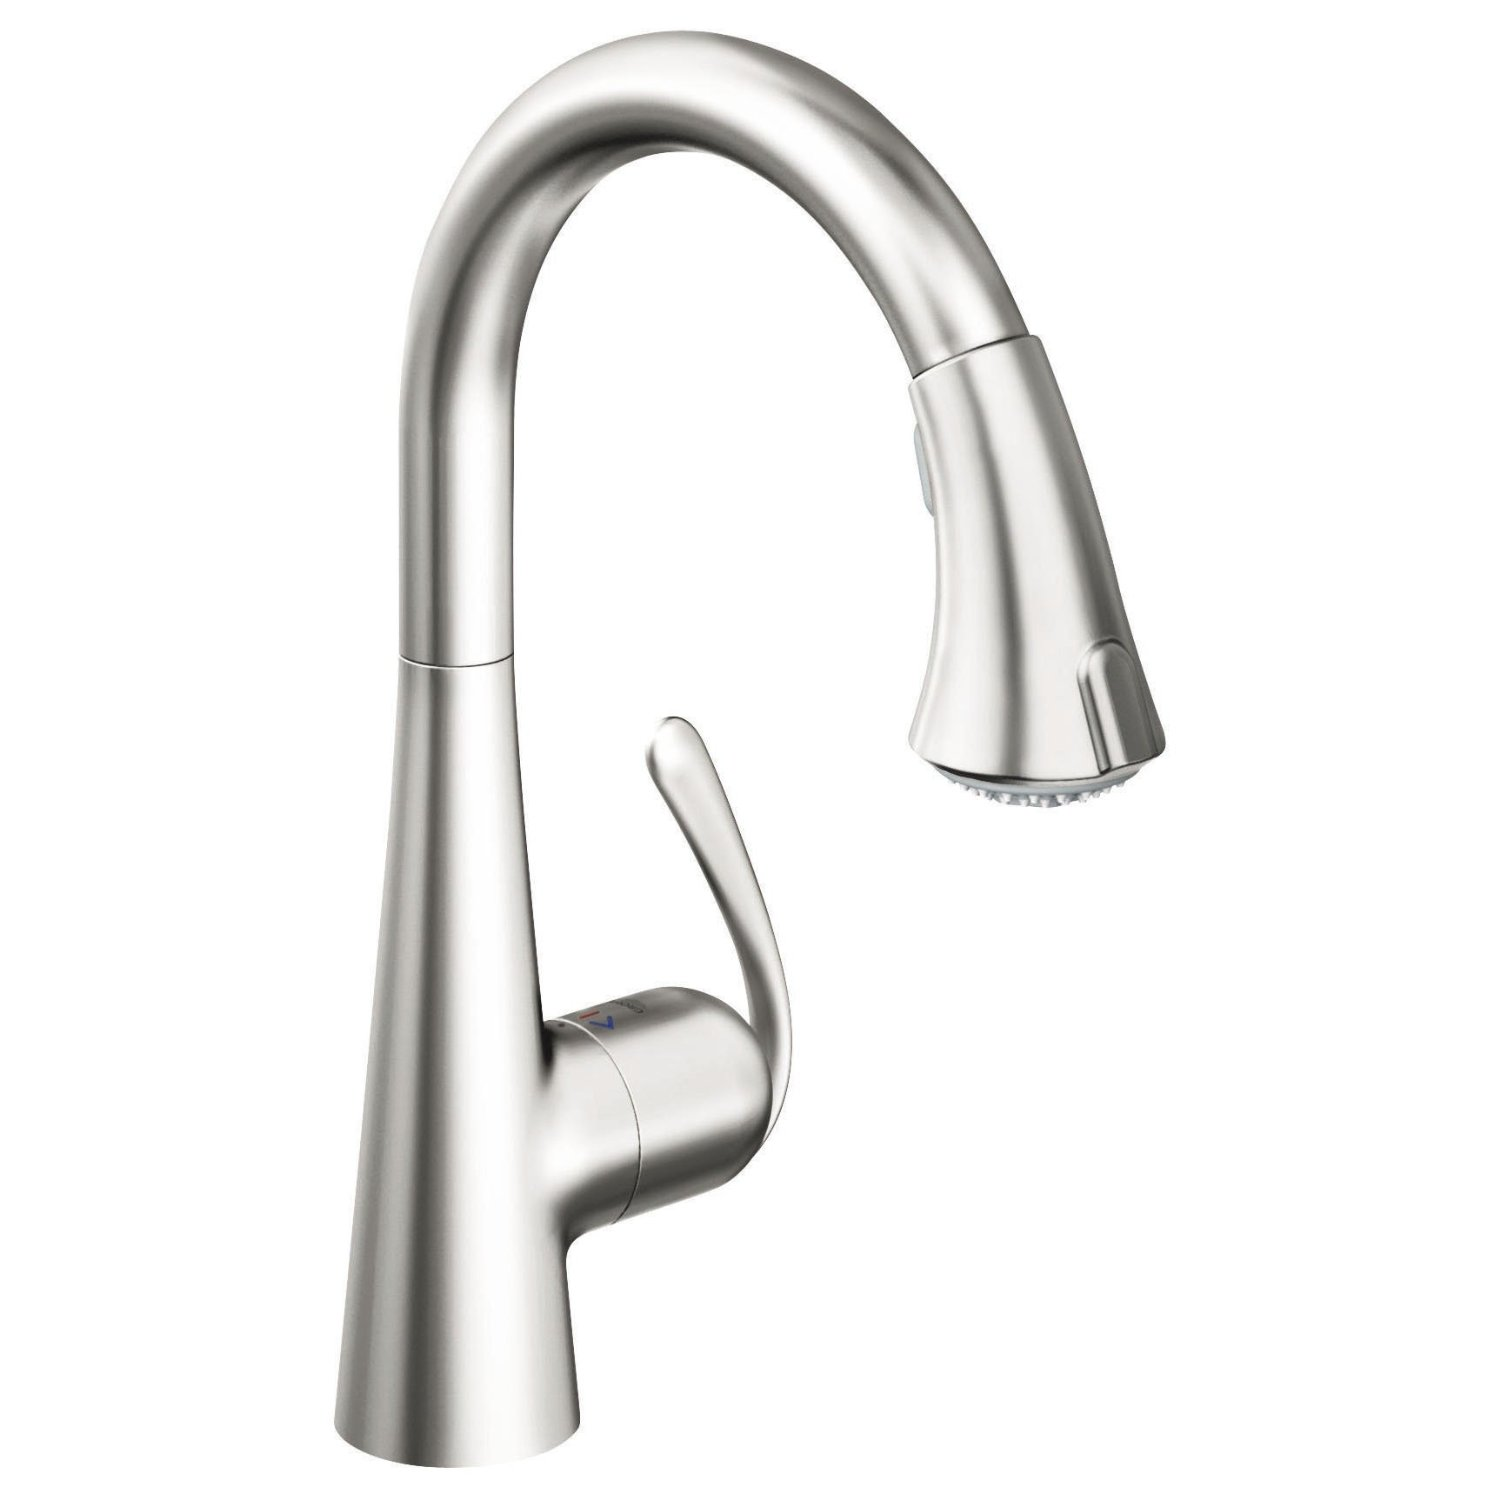 Upscale Grohe Kitchen Faucets That You've Never Seen Before